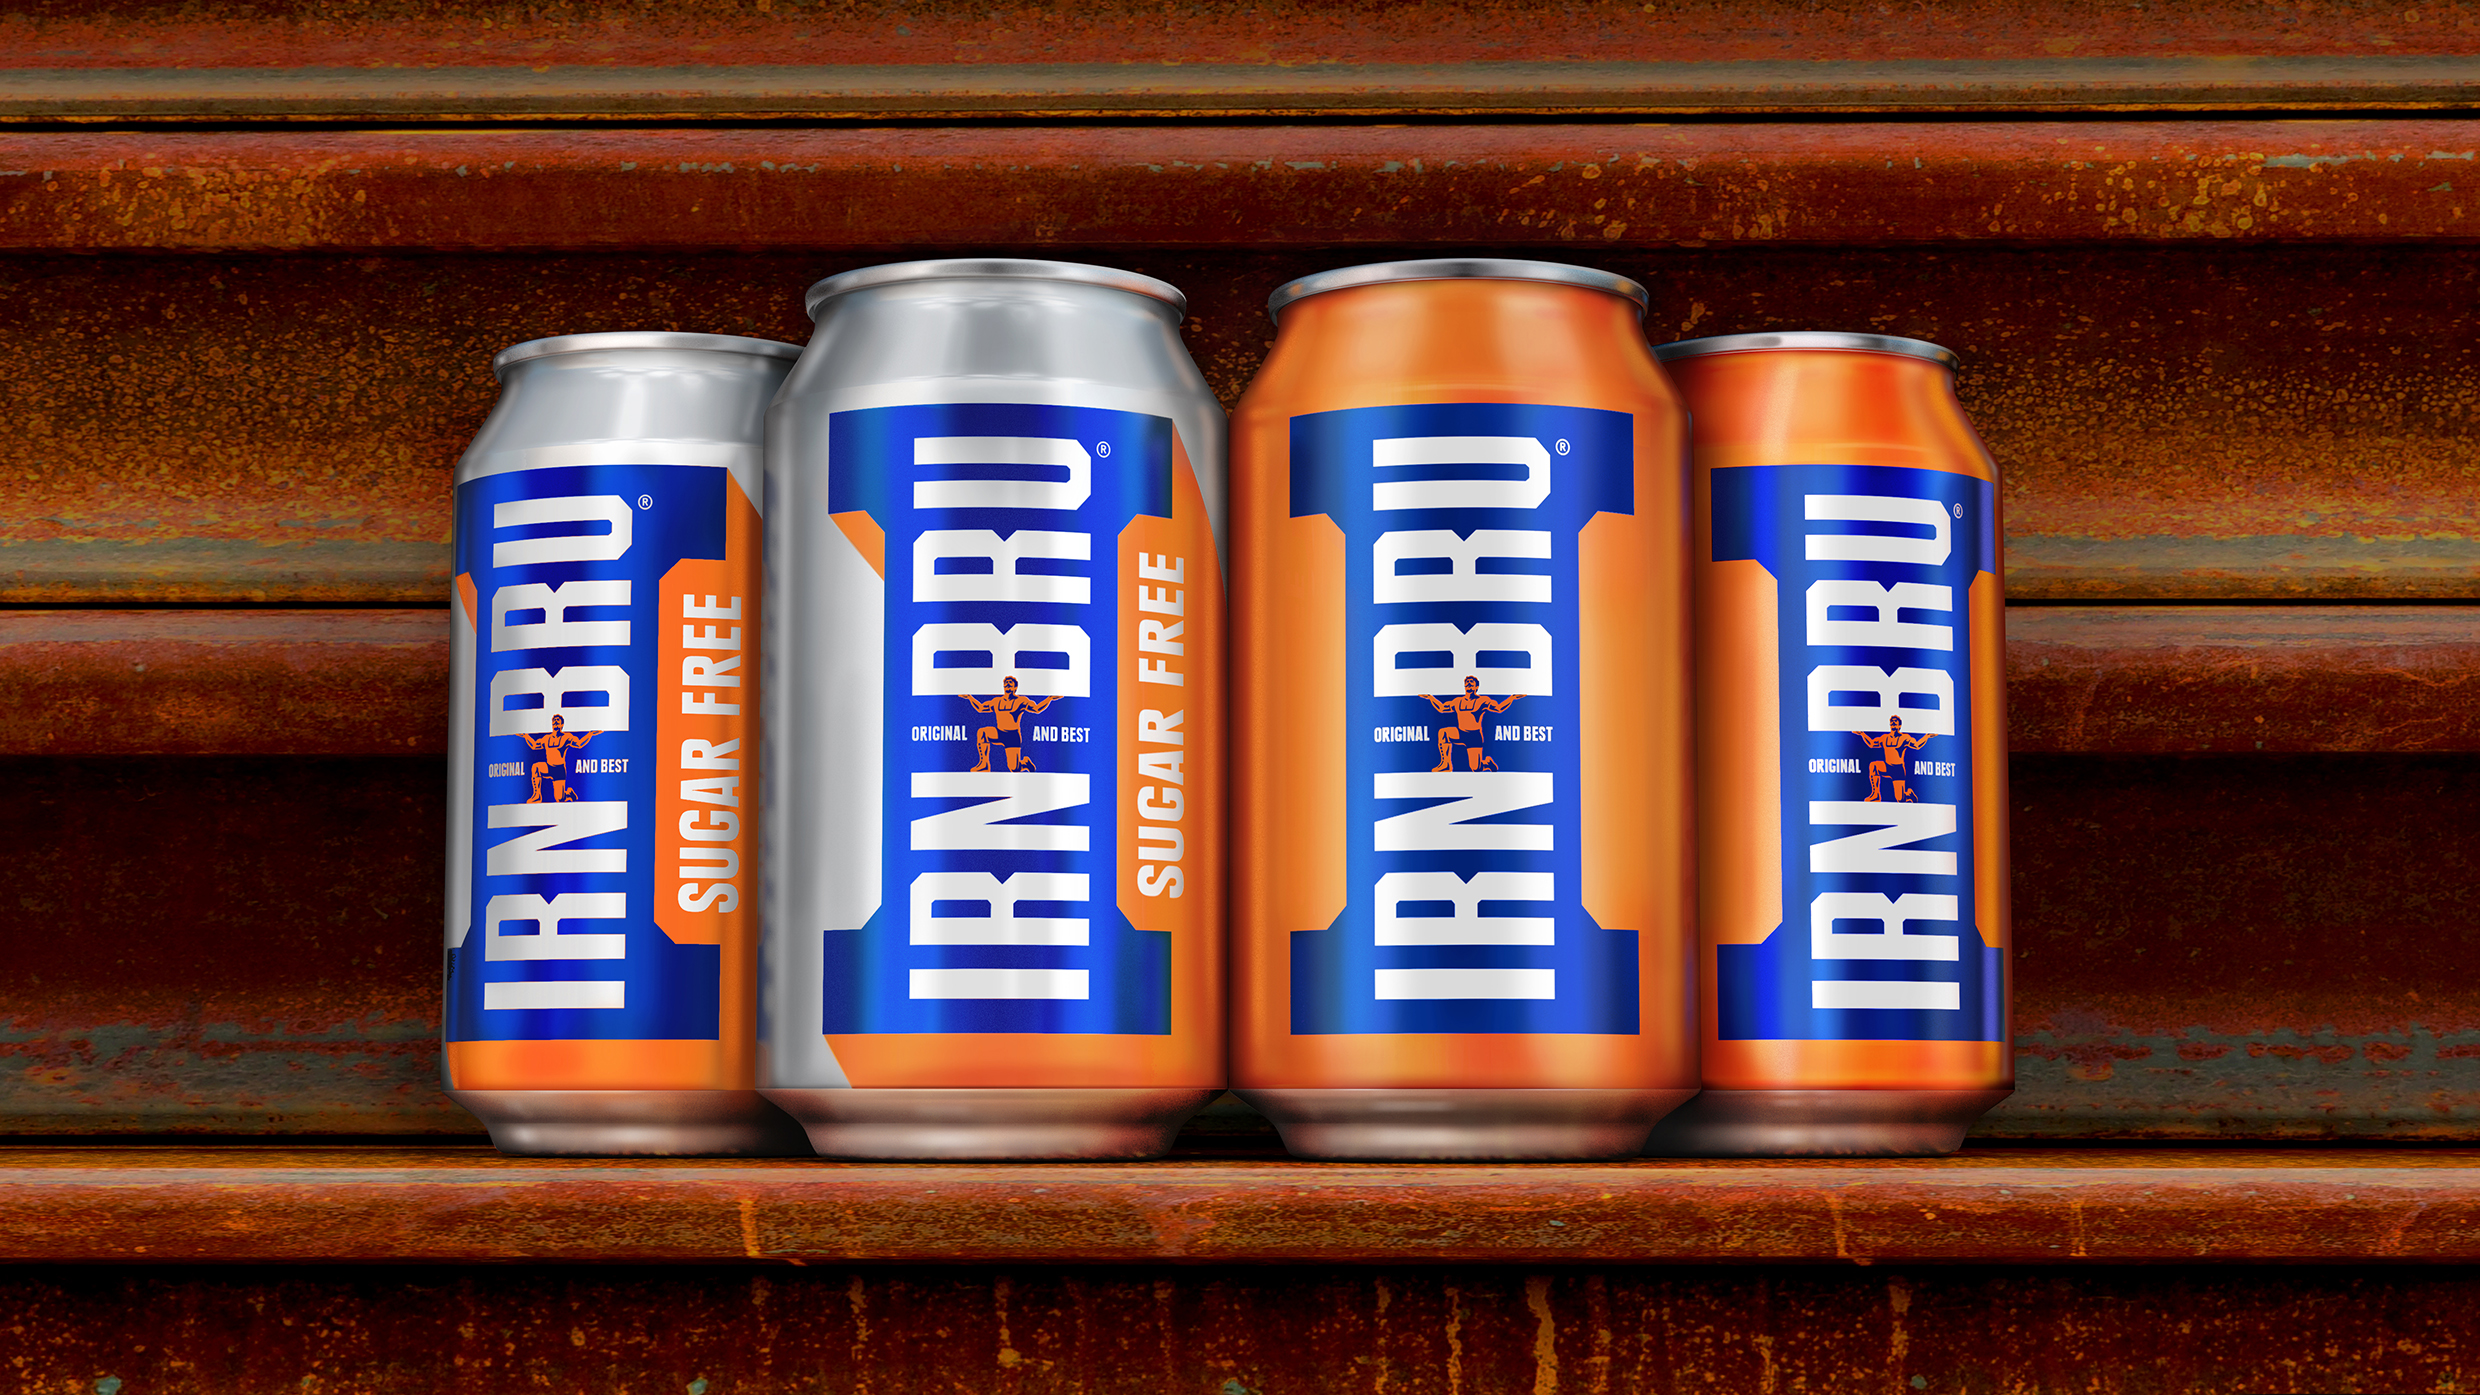 Has Production Sick Irn-Bru Chirpse Of Officially Gone Out –